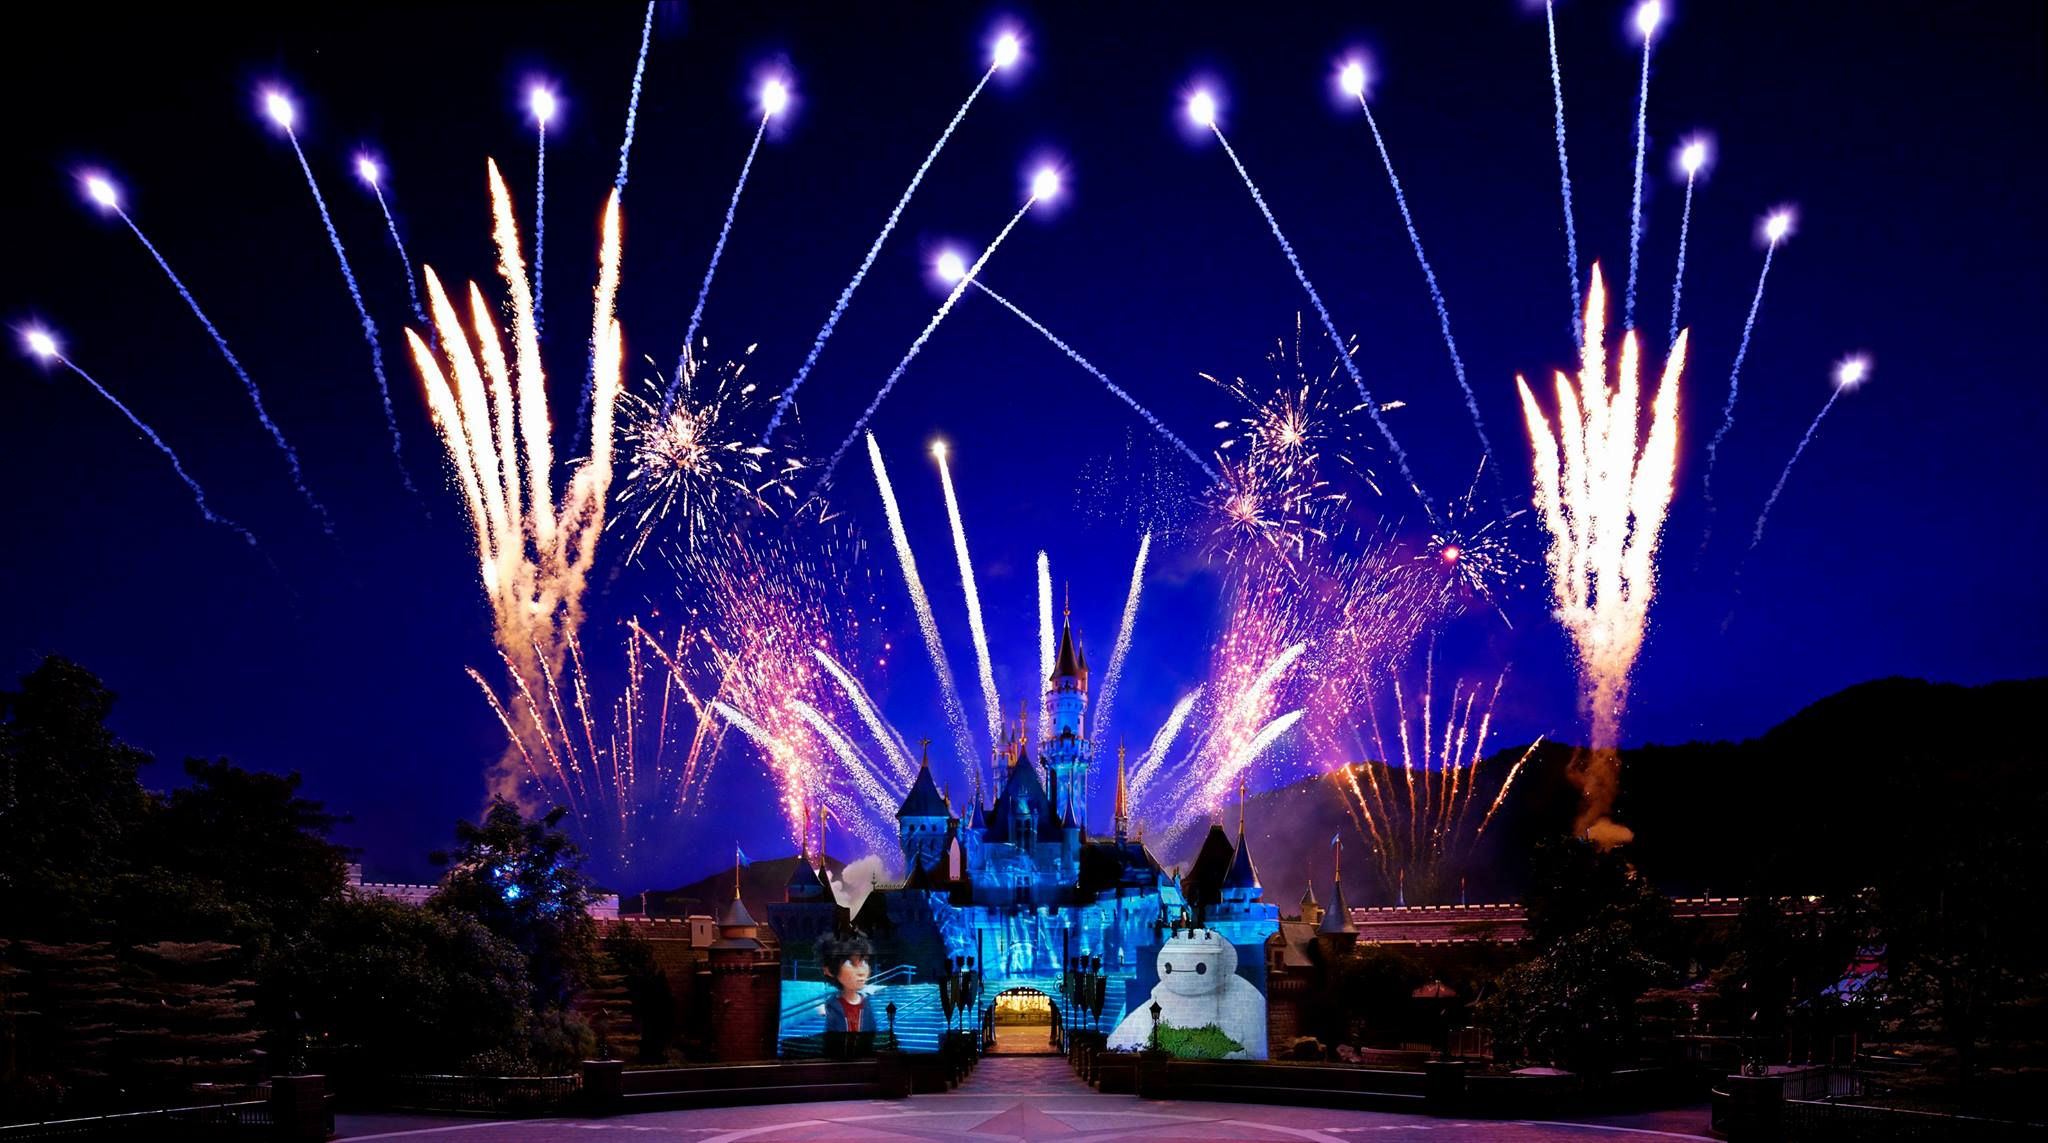 Fireworks show at Hong Kong Disneyland